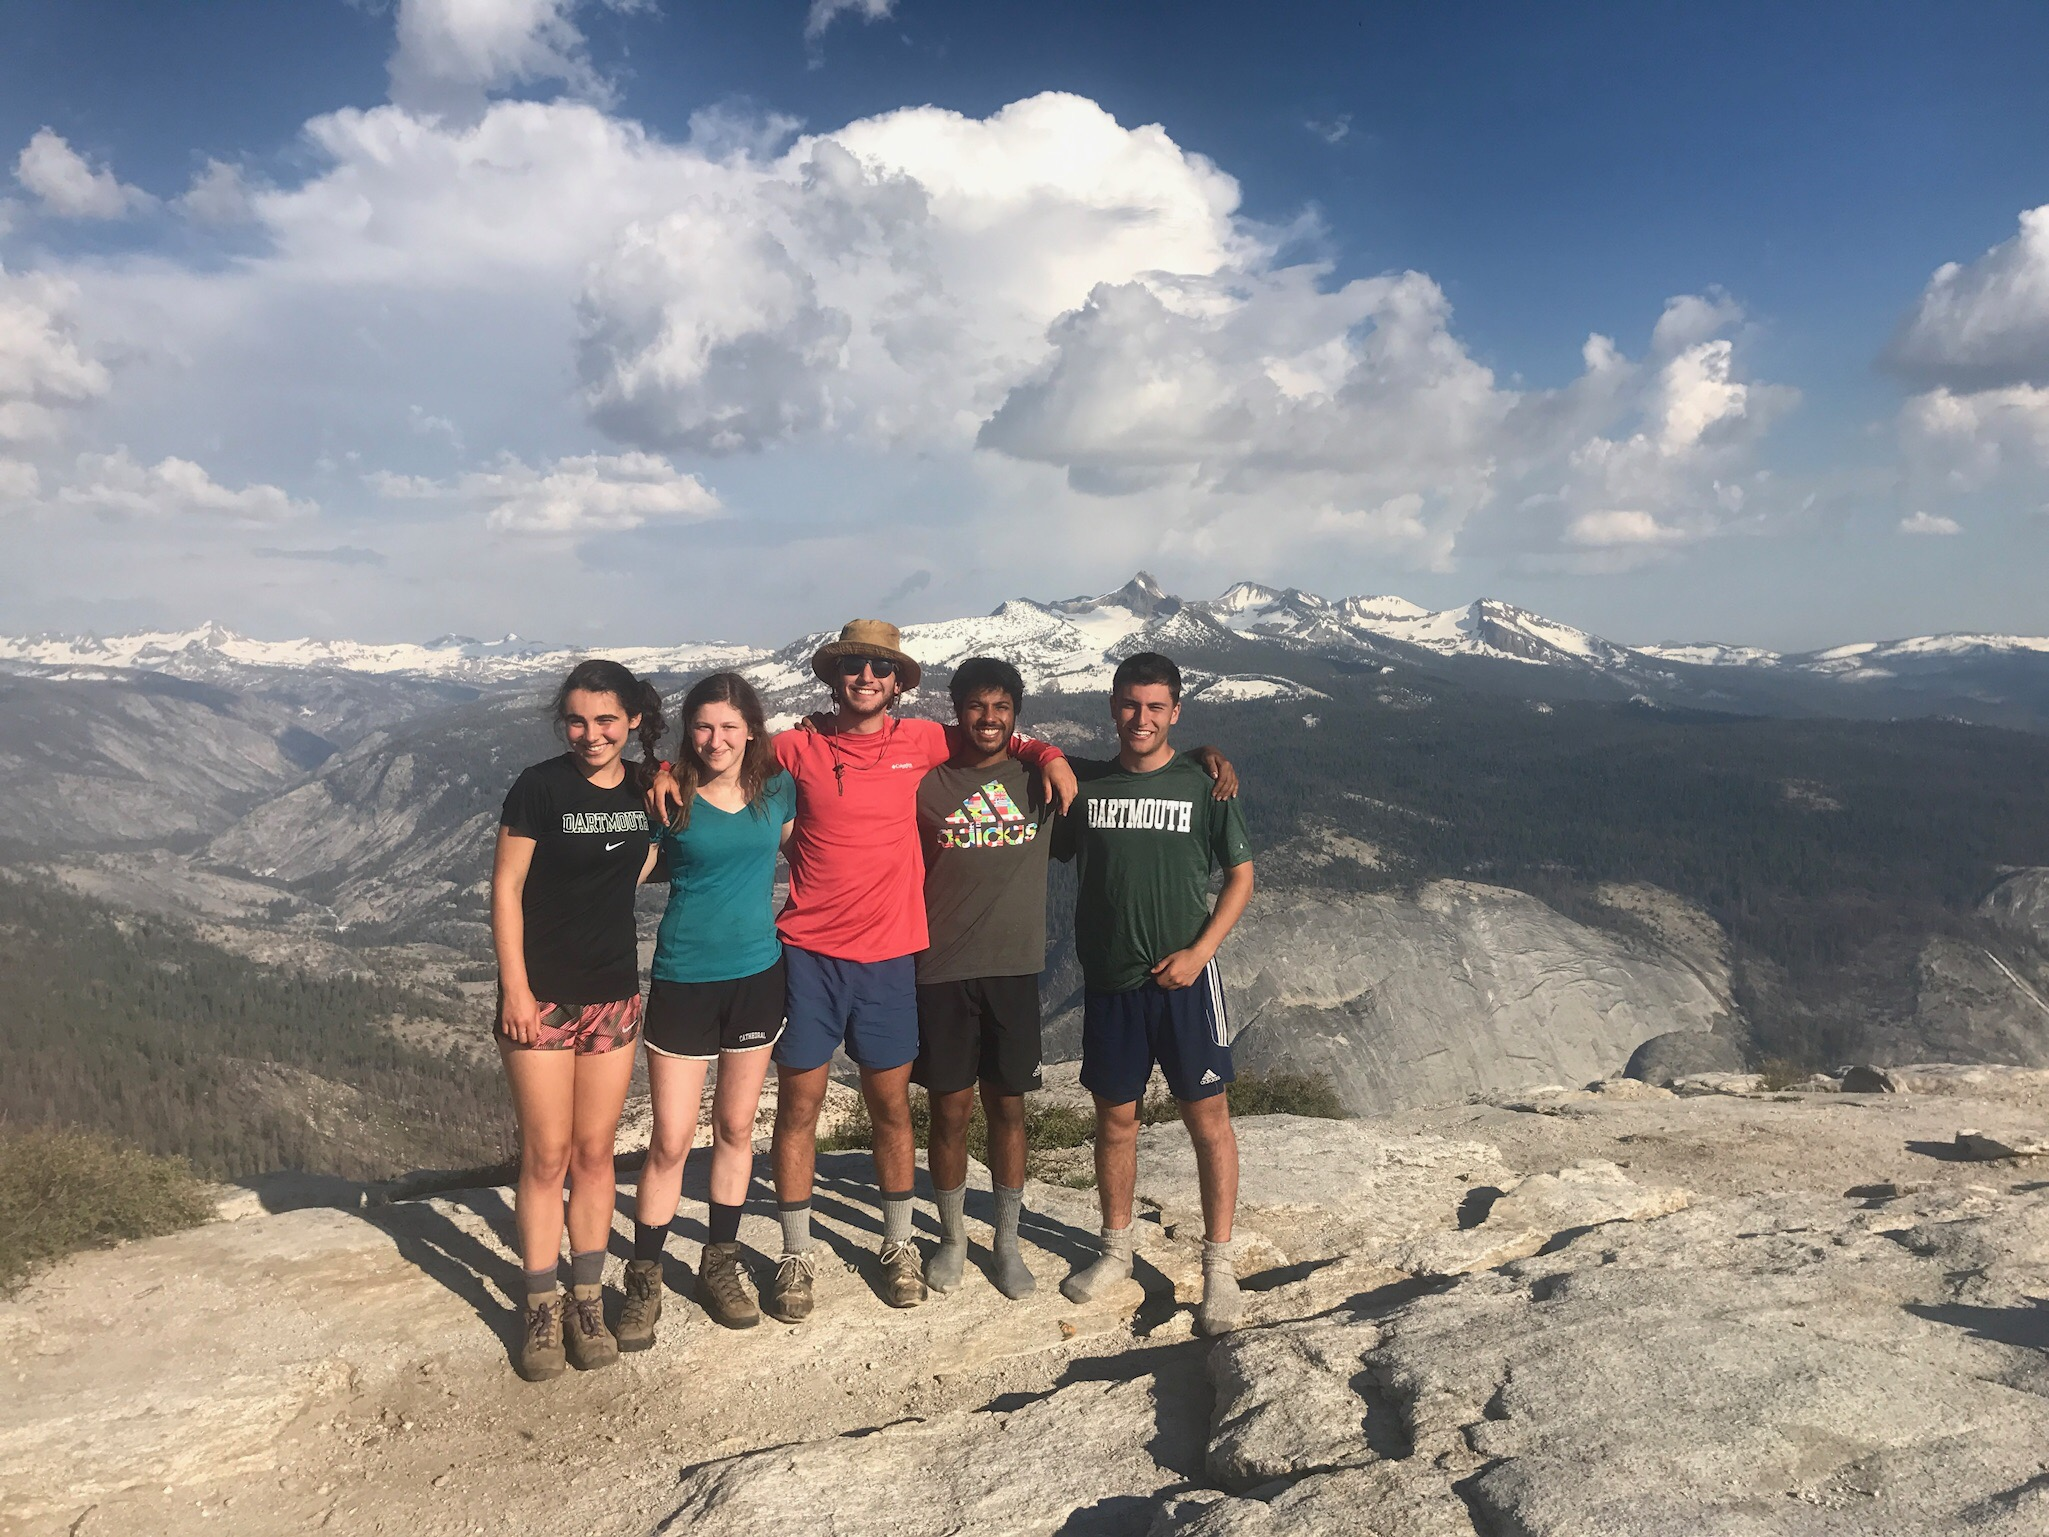 Dartmouth students atop Cloud's Rest, Yosemite